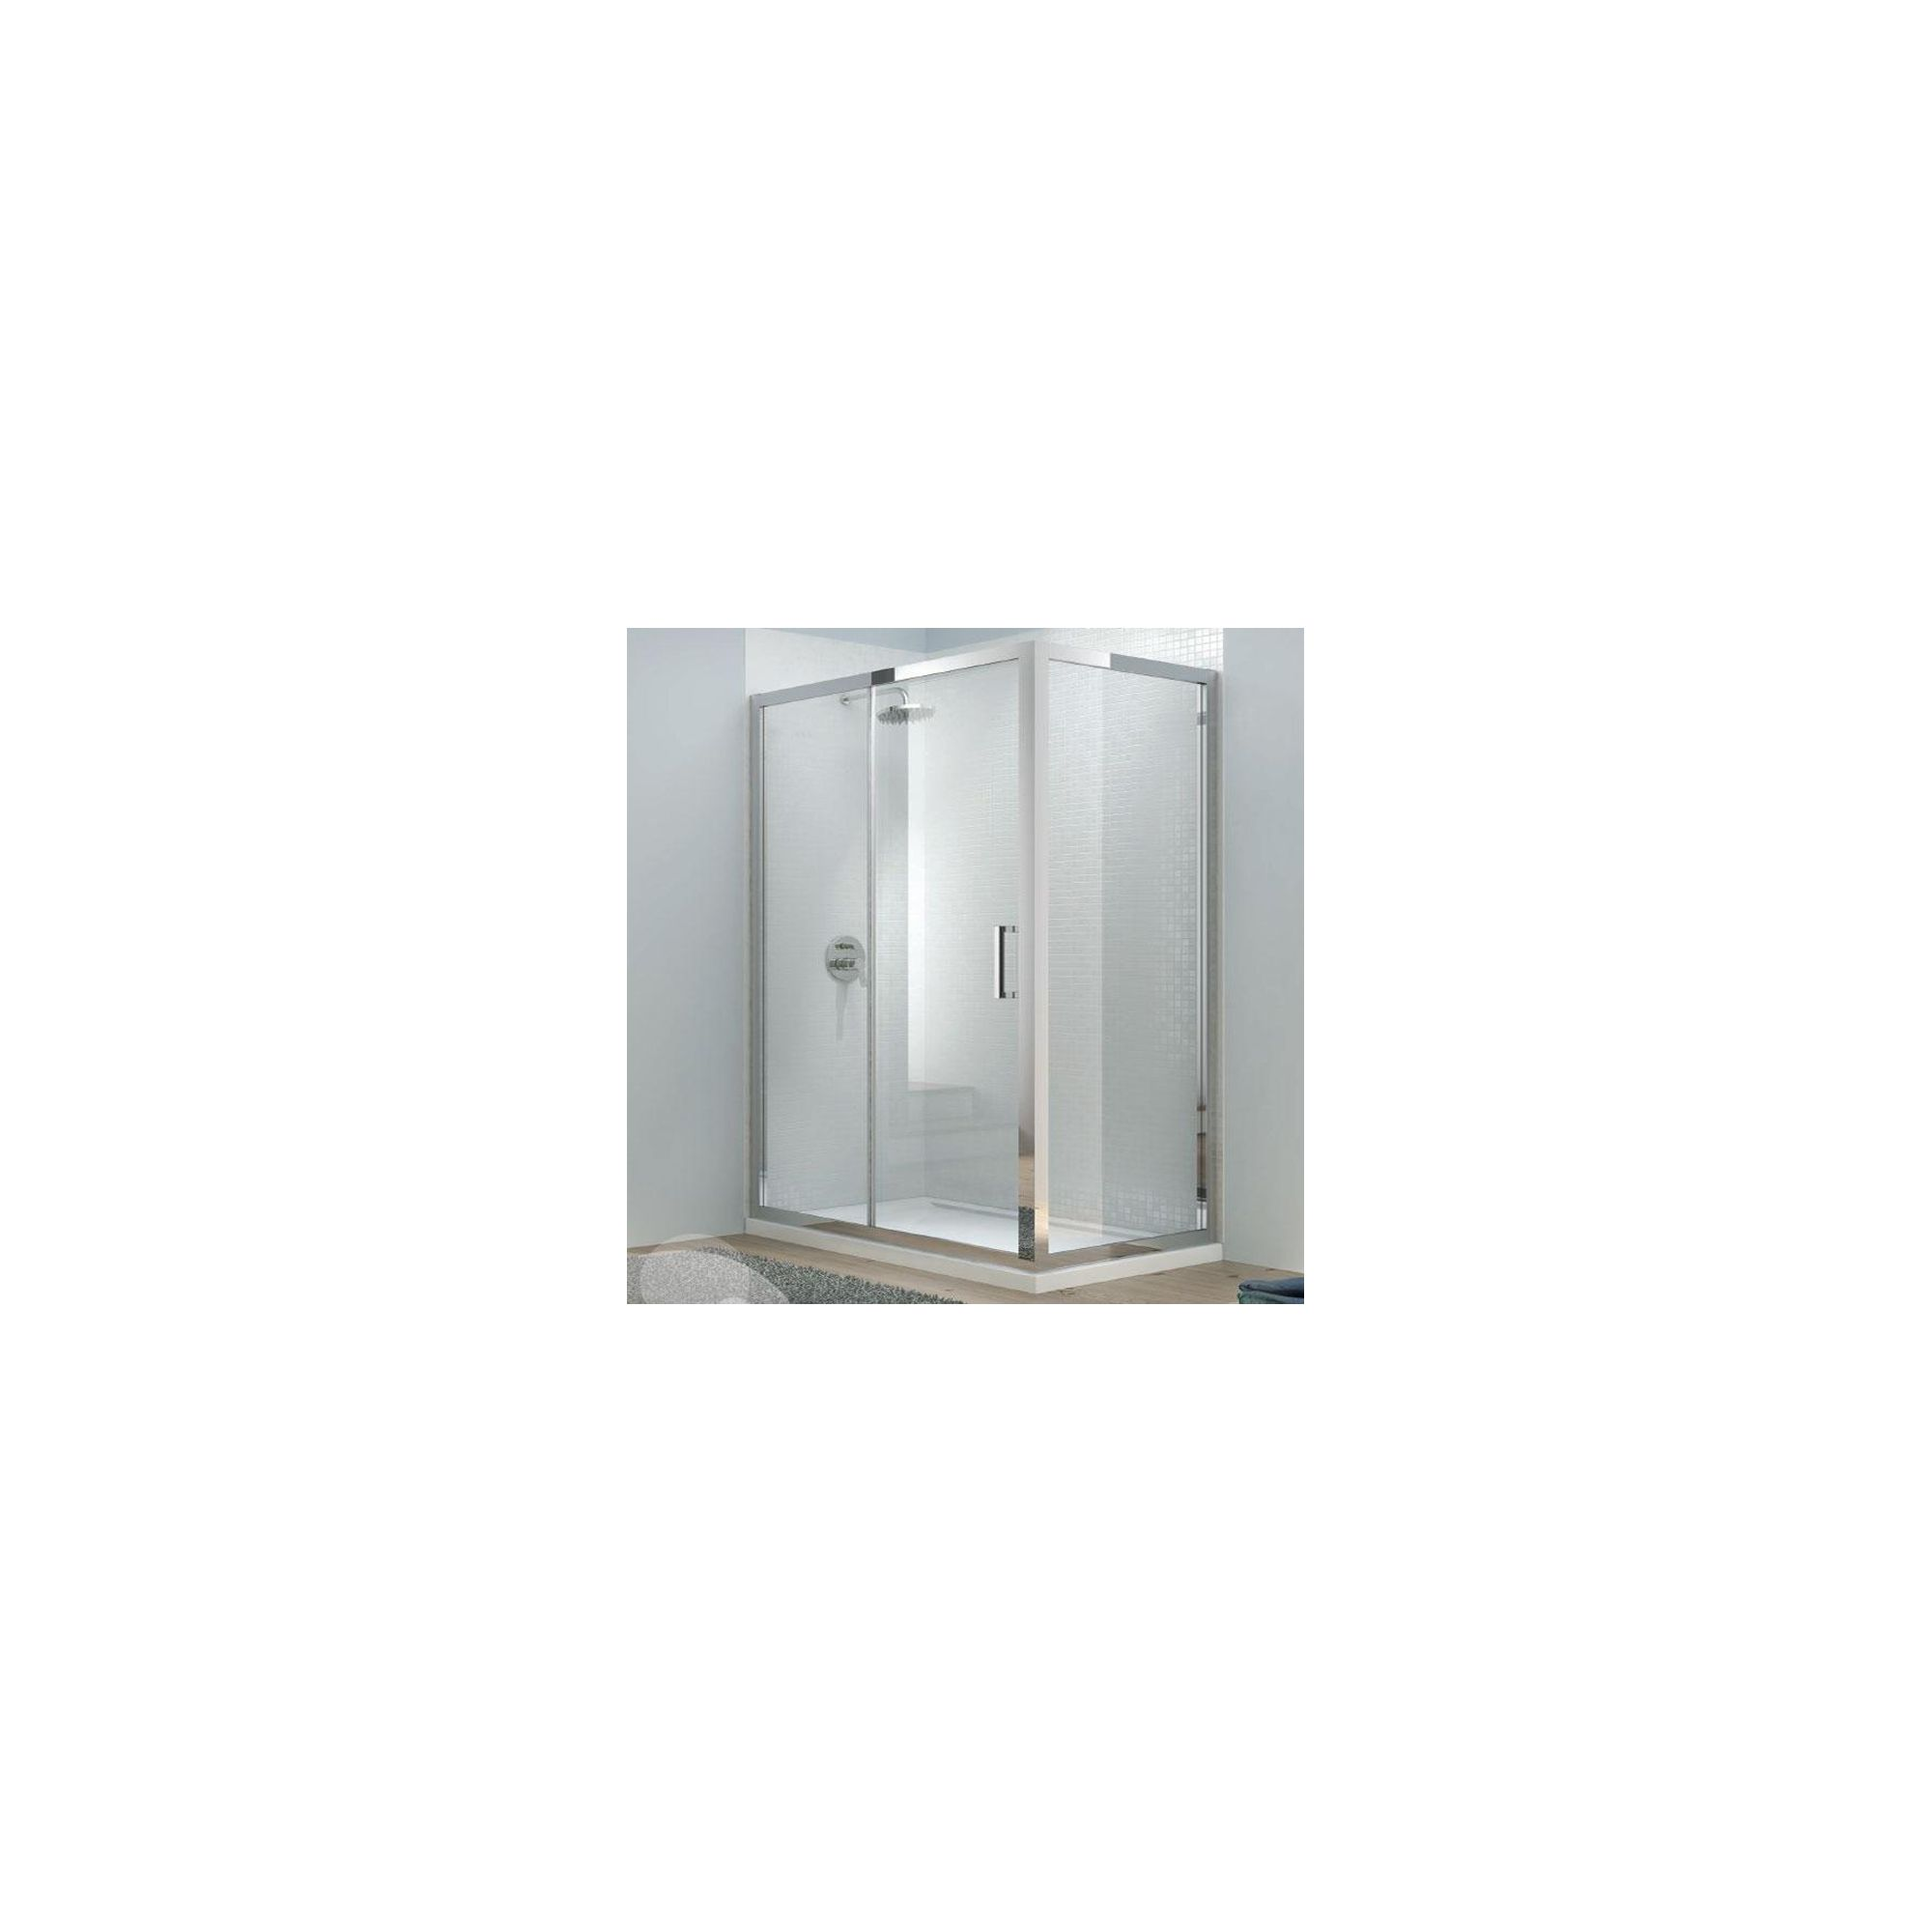 Merlyn Vivid Eight Sliding Shower Door, 1400mm Wide, 8mm Glass at Tesco Direct